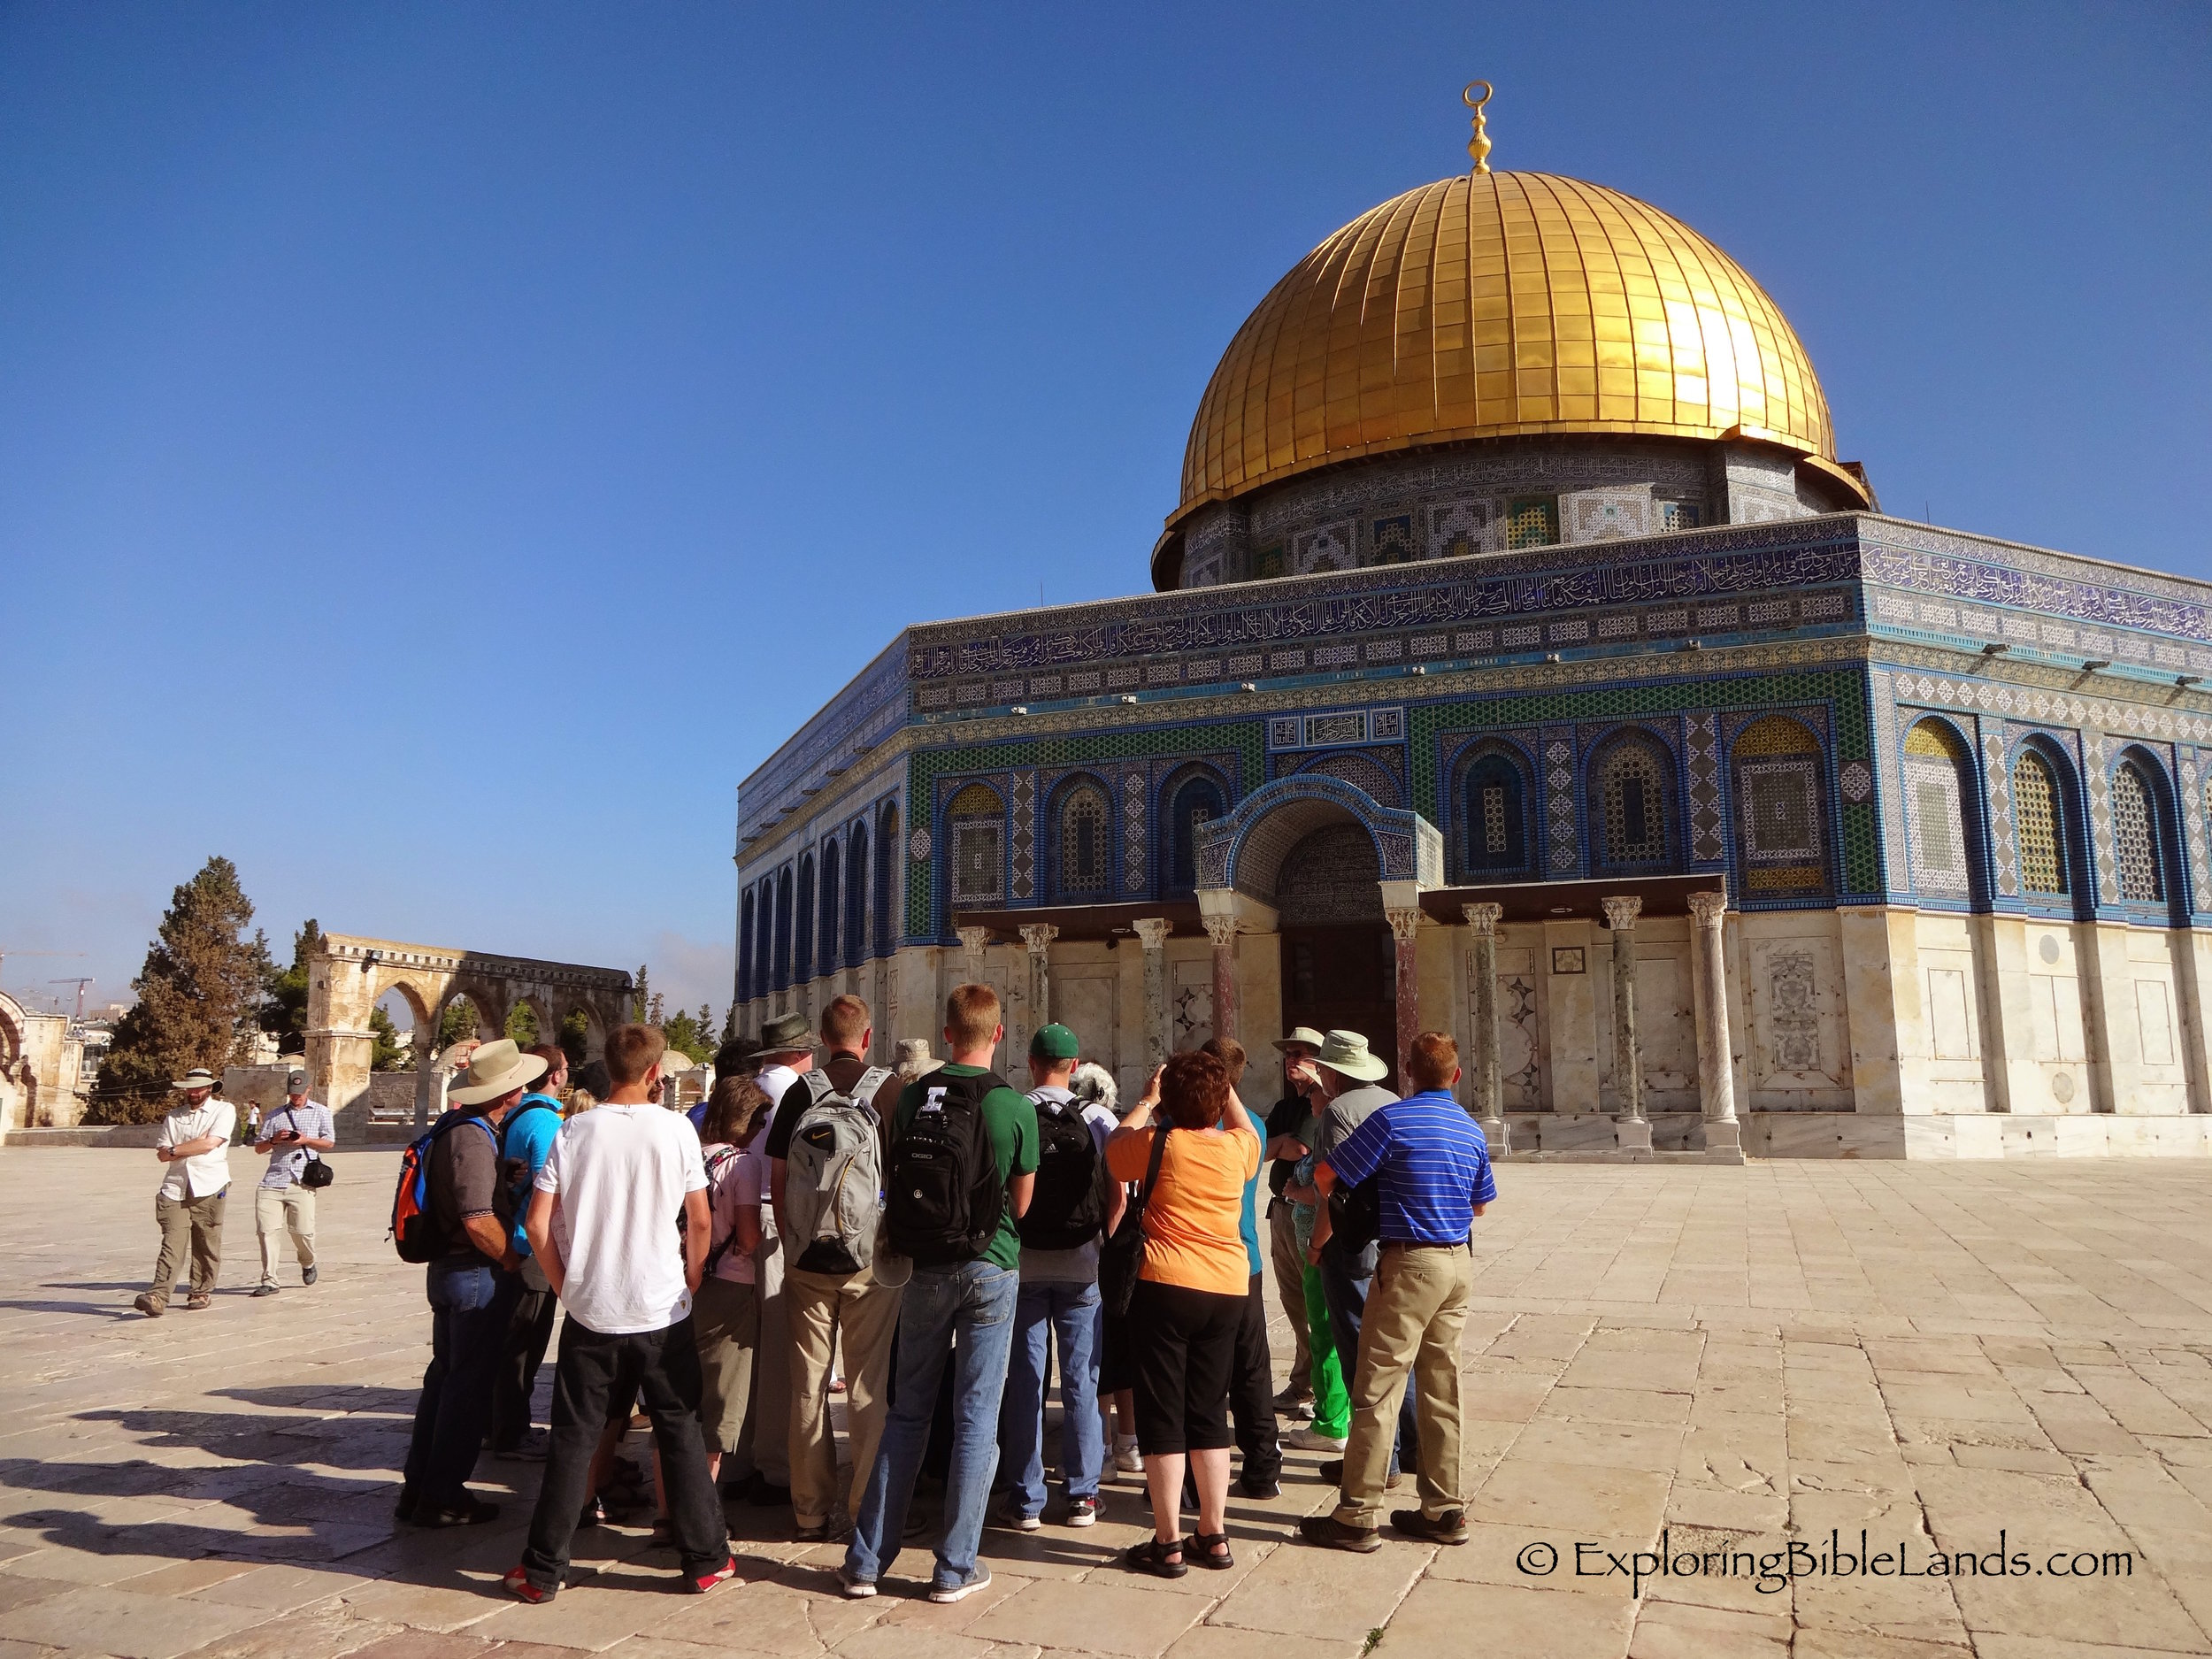 Our group in front of the Dome of the Rock.